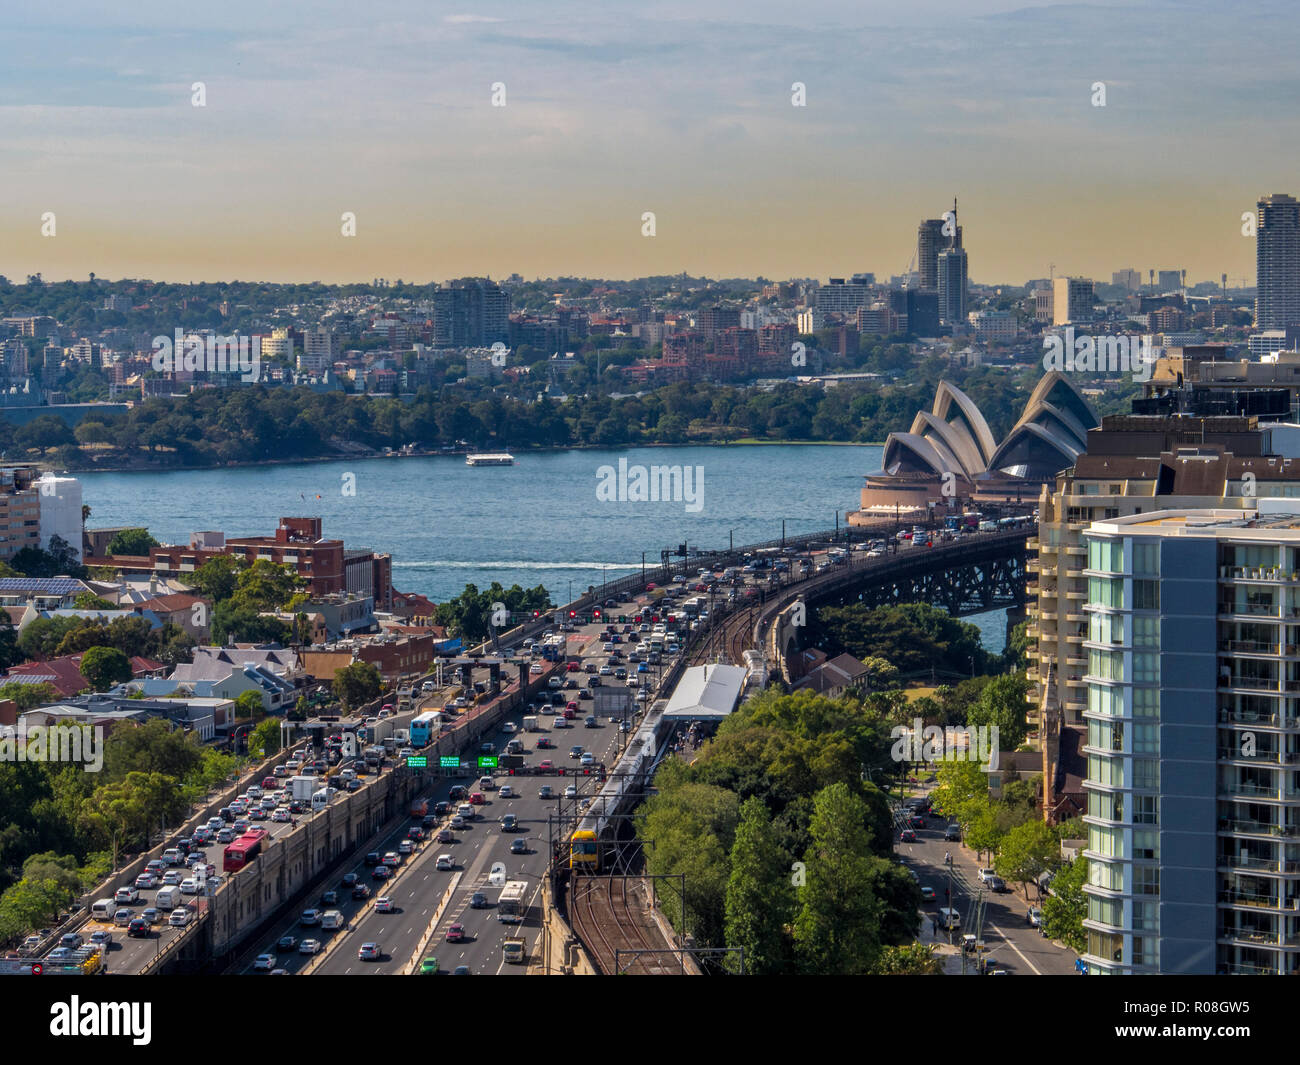 Traffic congestion on Cahill Expressway ahead of crossing Sydney Harbour Bridge, Sydney, NSW, Australia - Stock Image